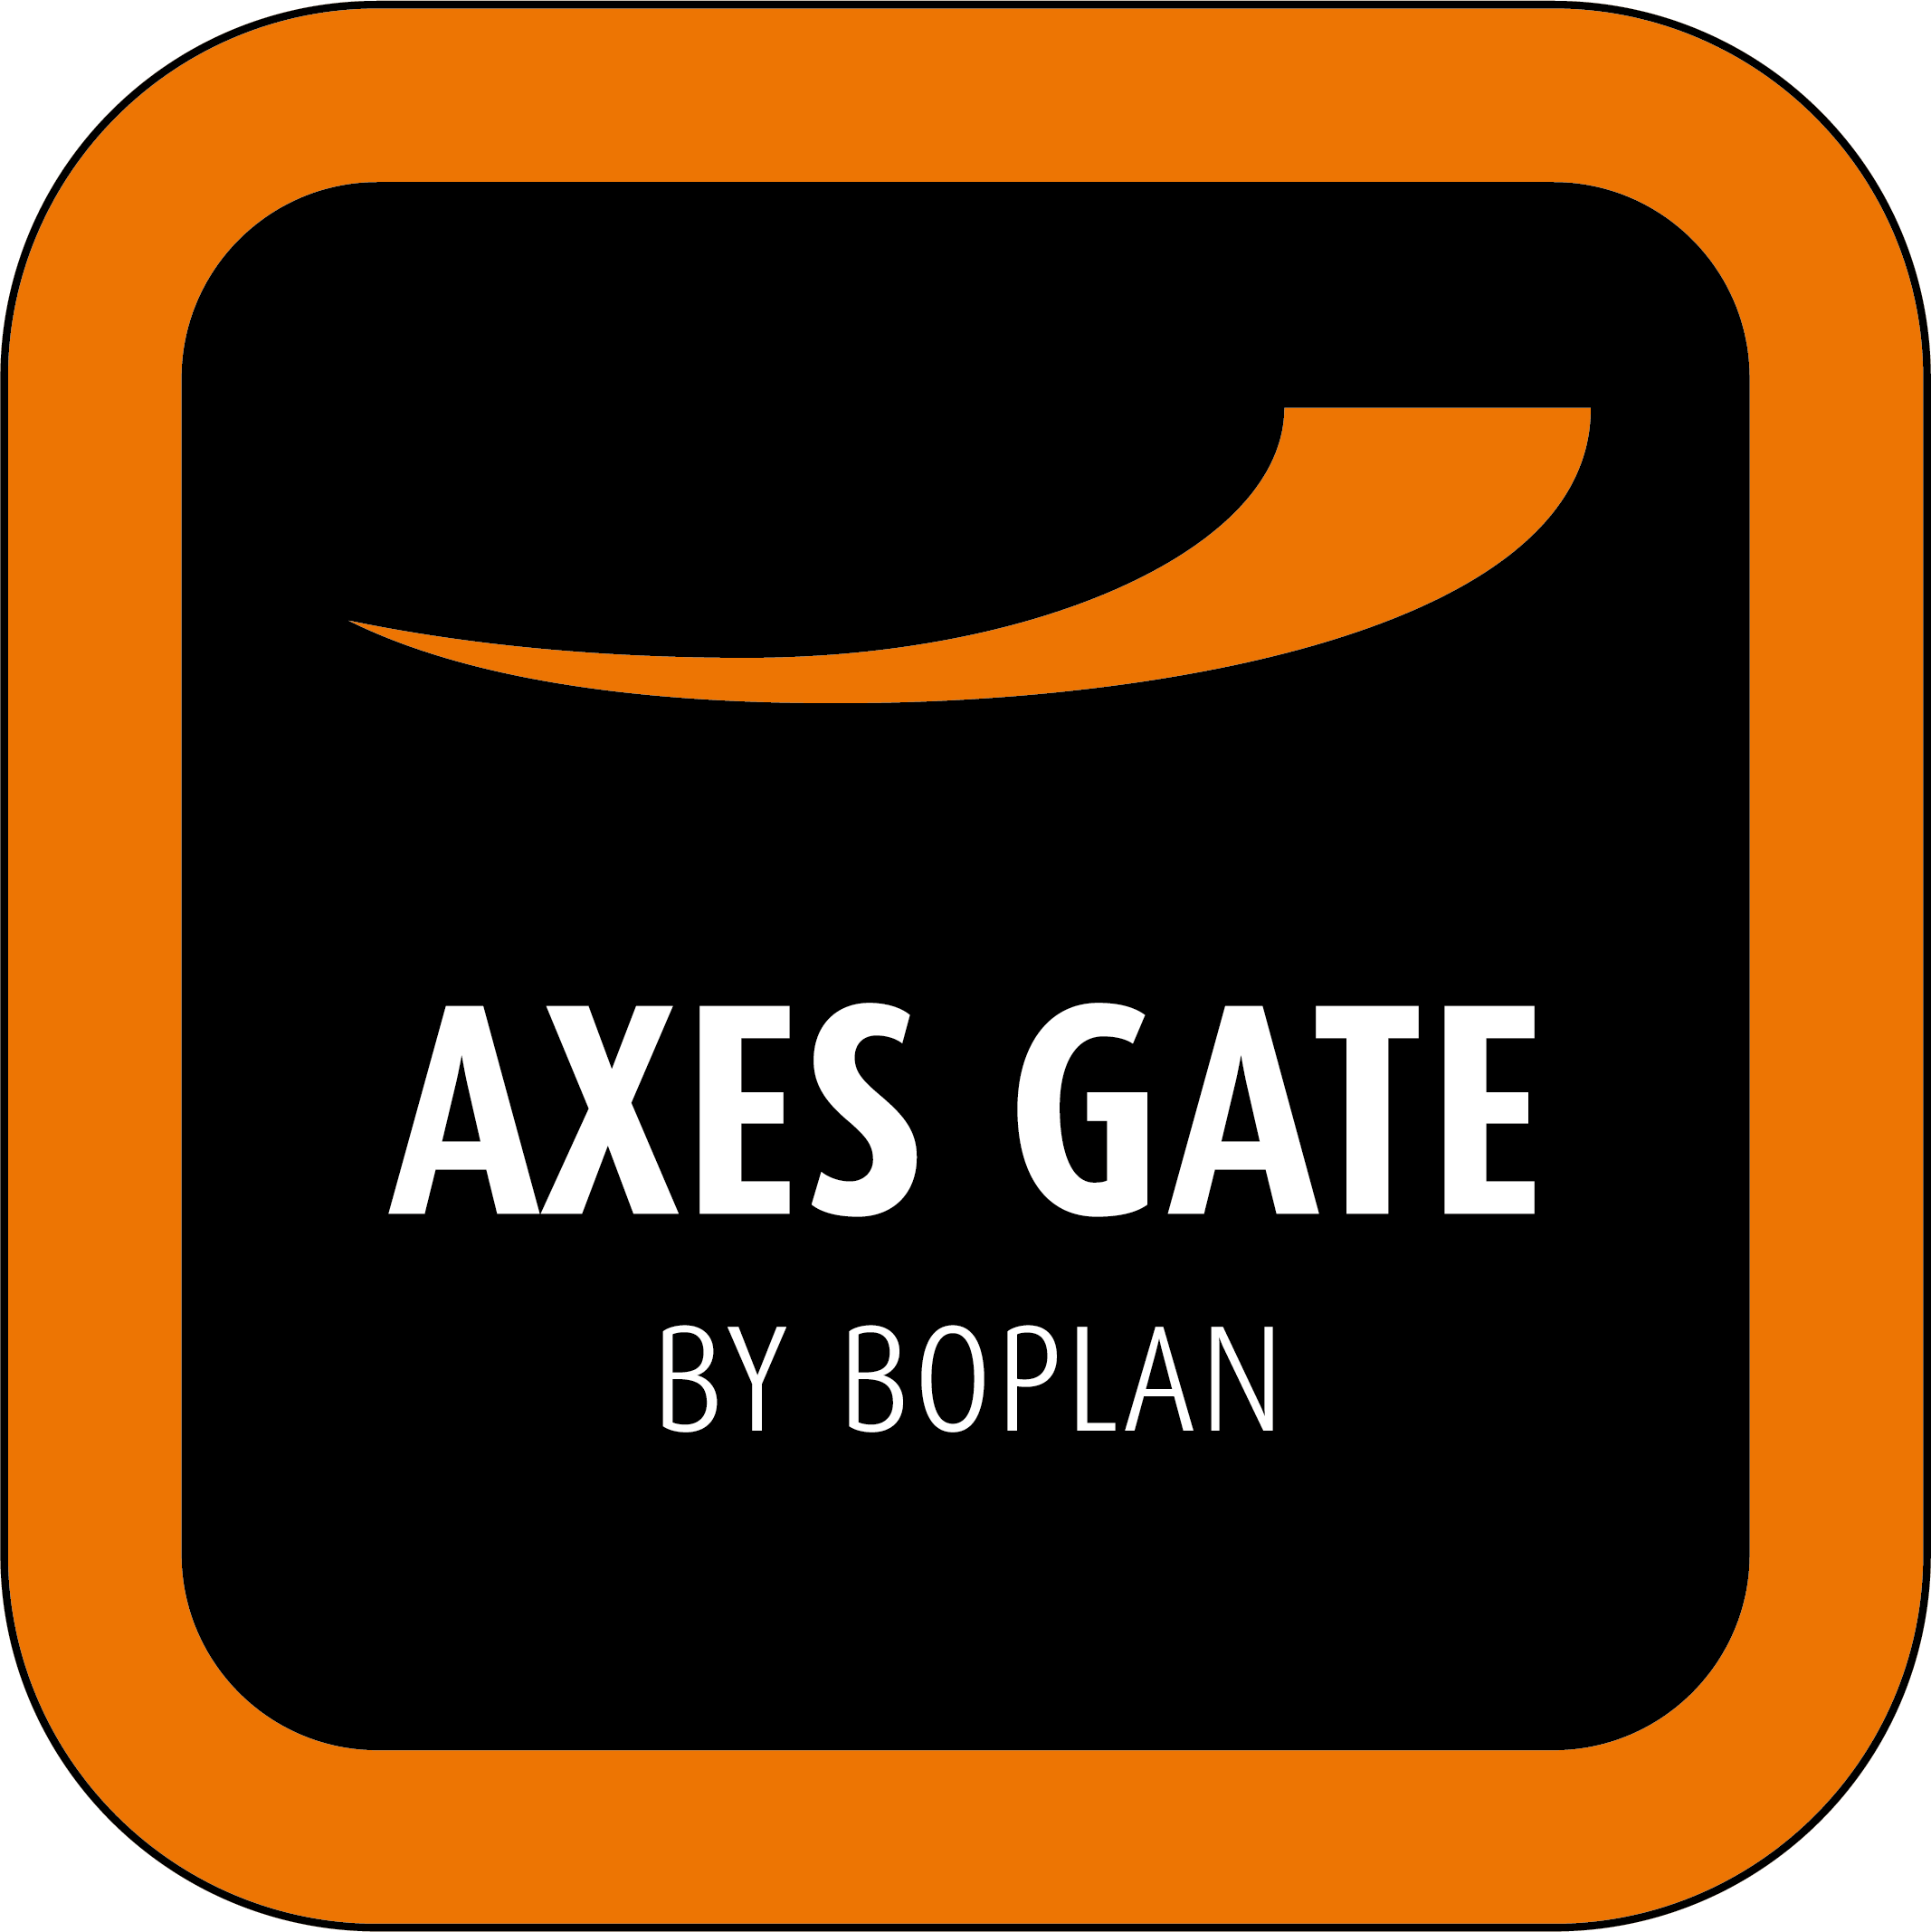 Axes Gate logo by Boplan